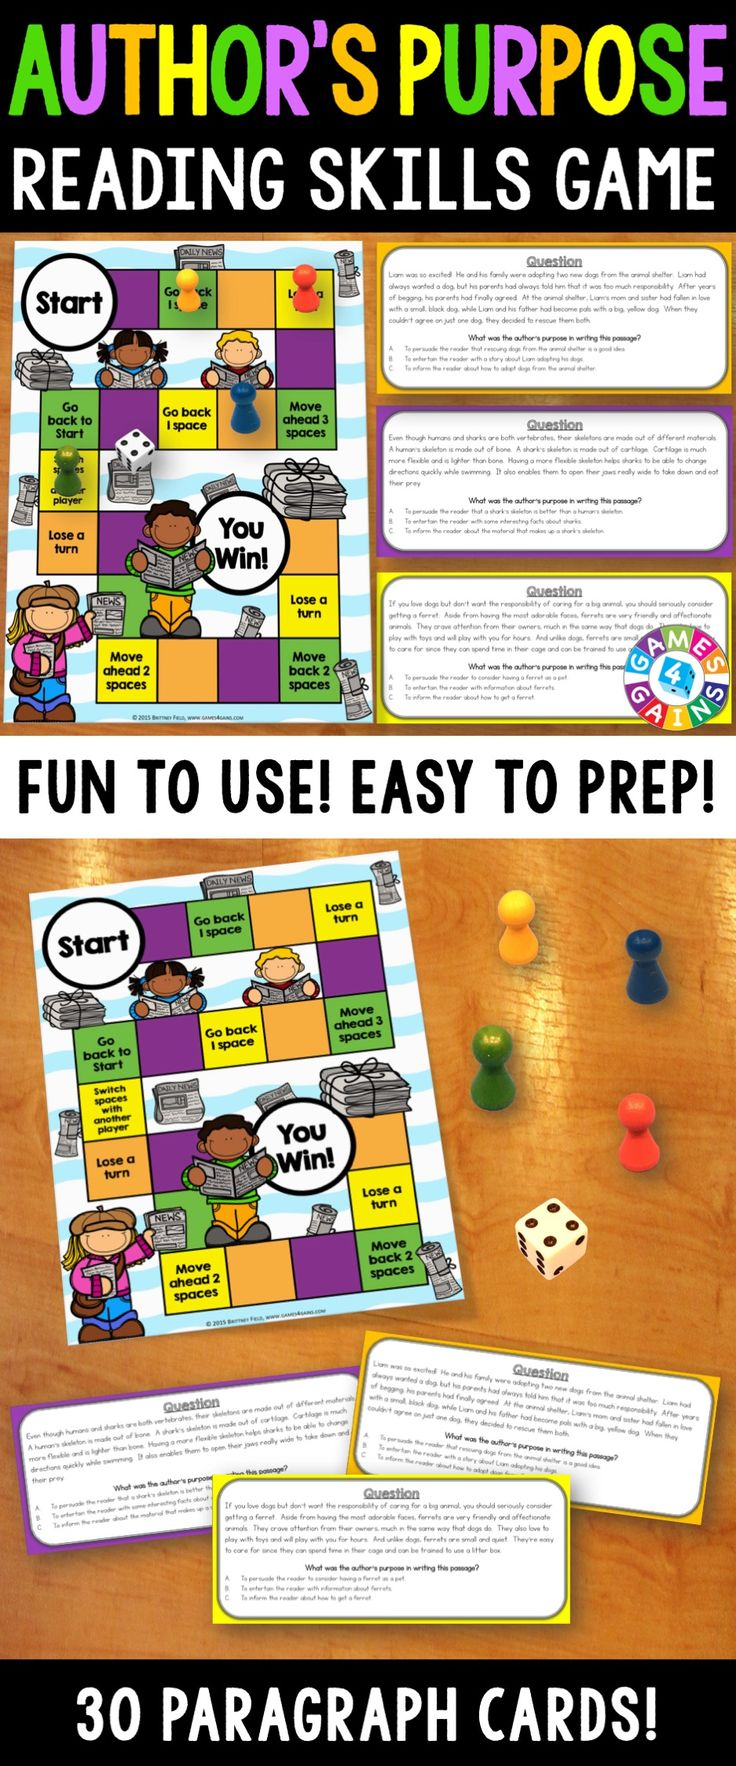 Best 25 Purpose games ideas on Pinterest  Fun youth group games